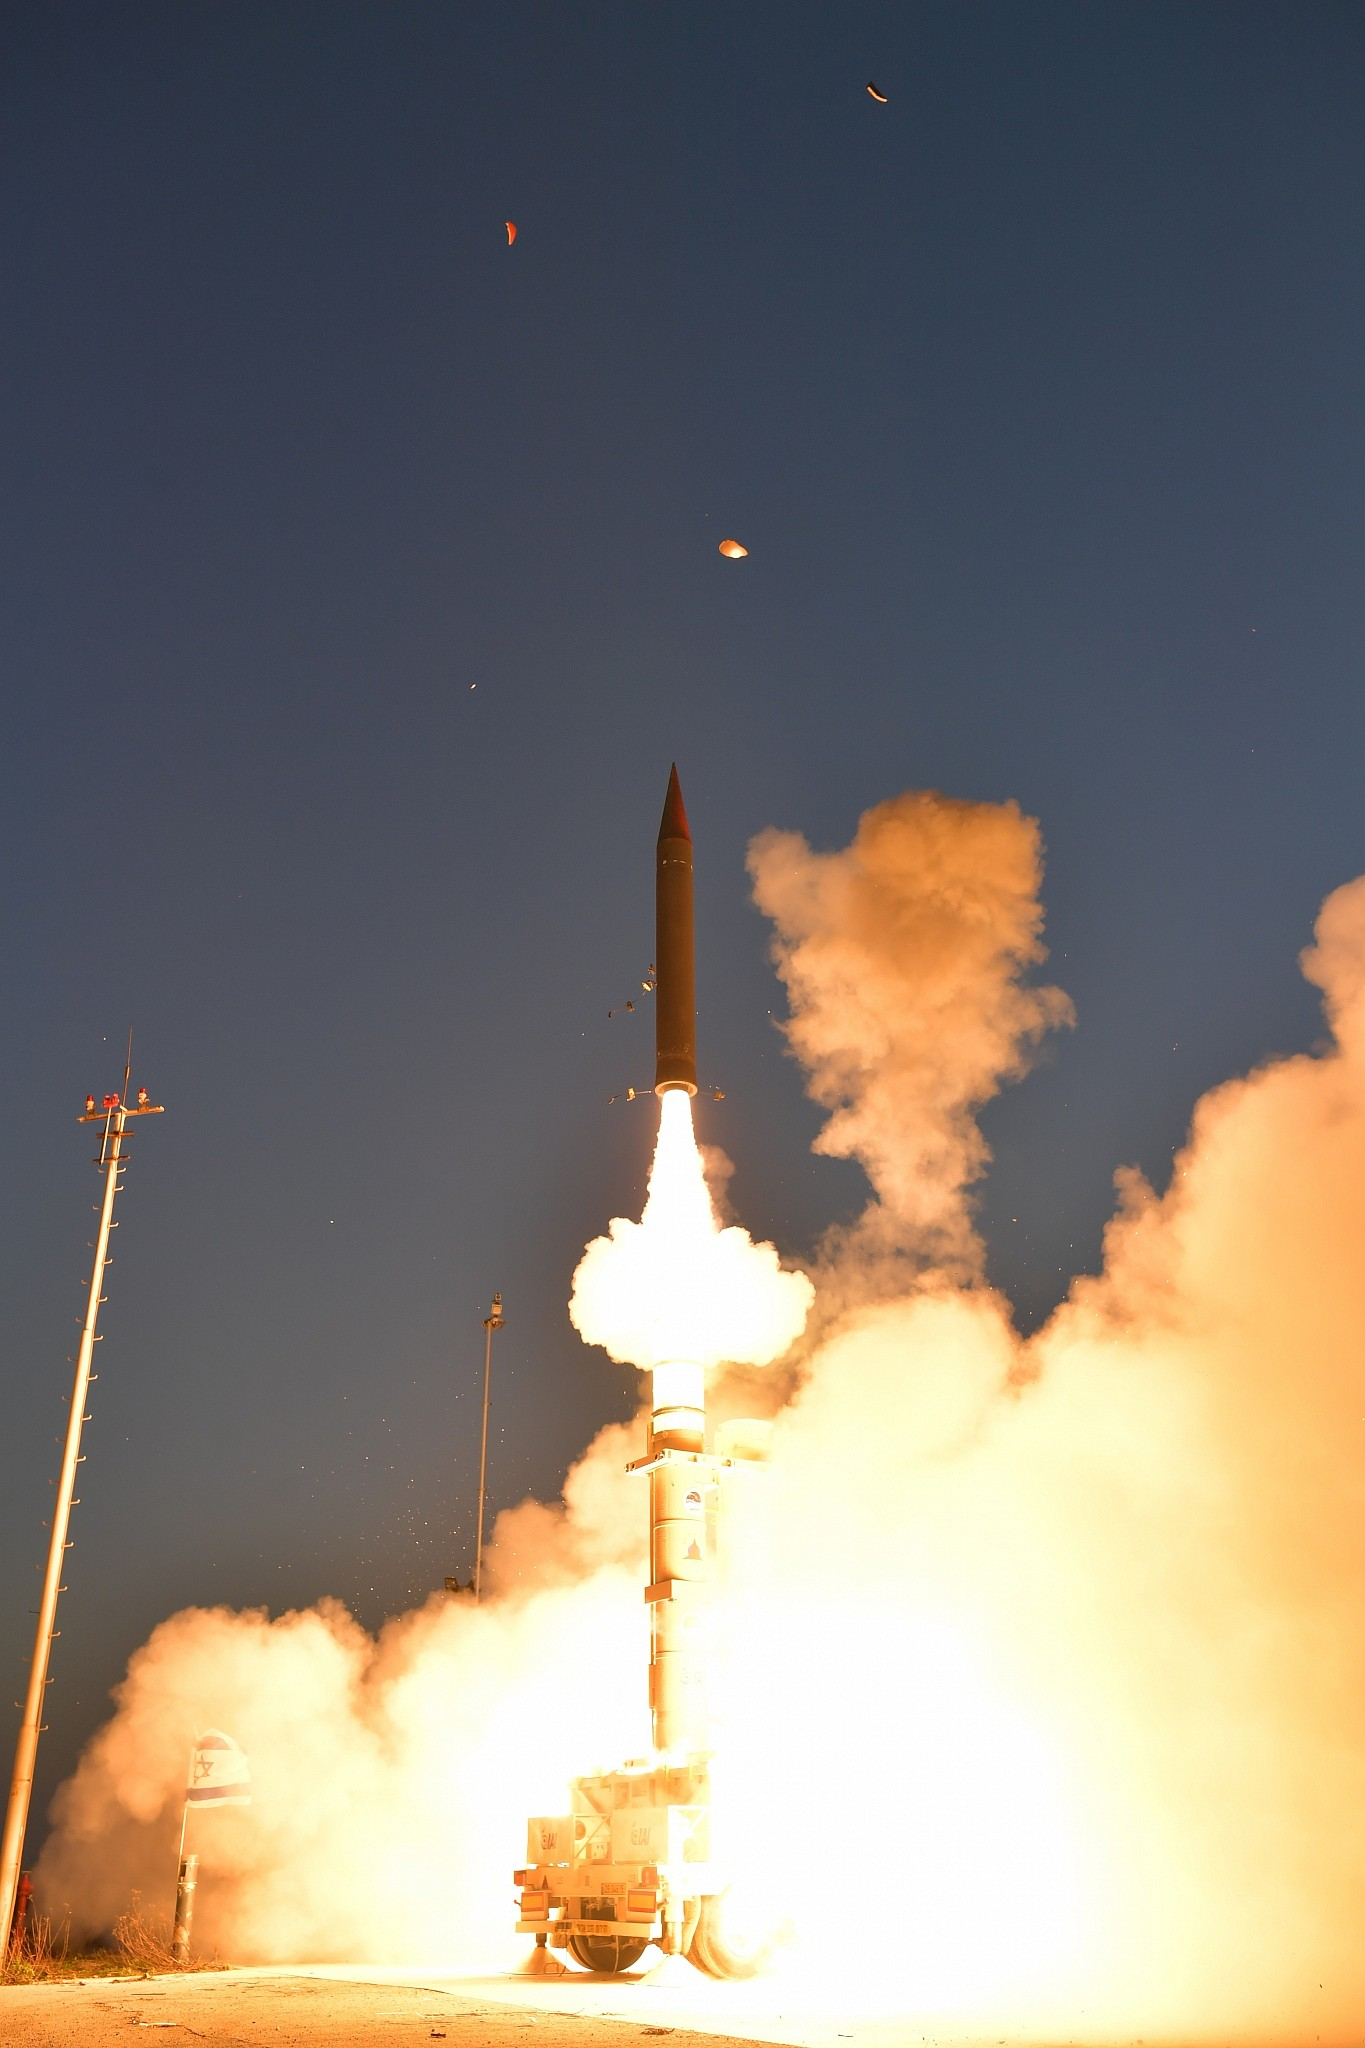 Israel, US test-fire Arrow 3 missile, declare trial a success | The